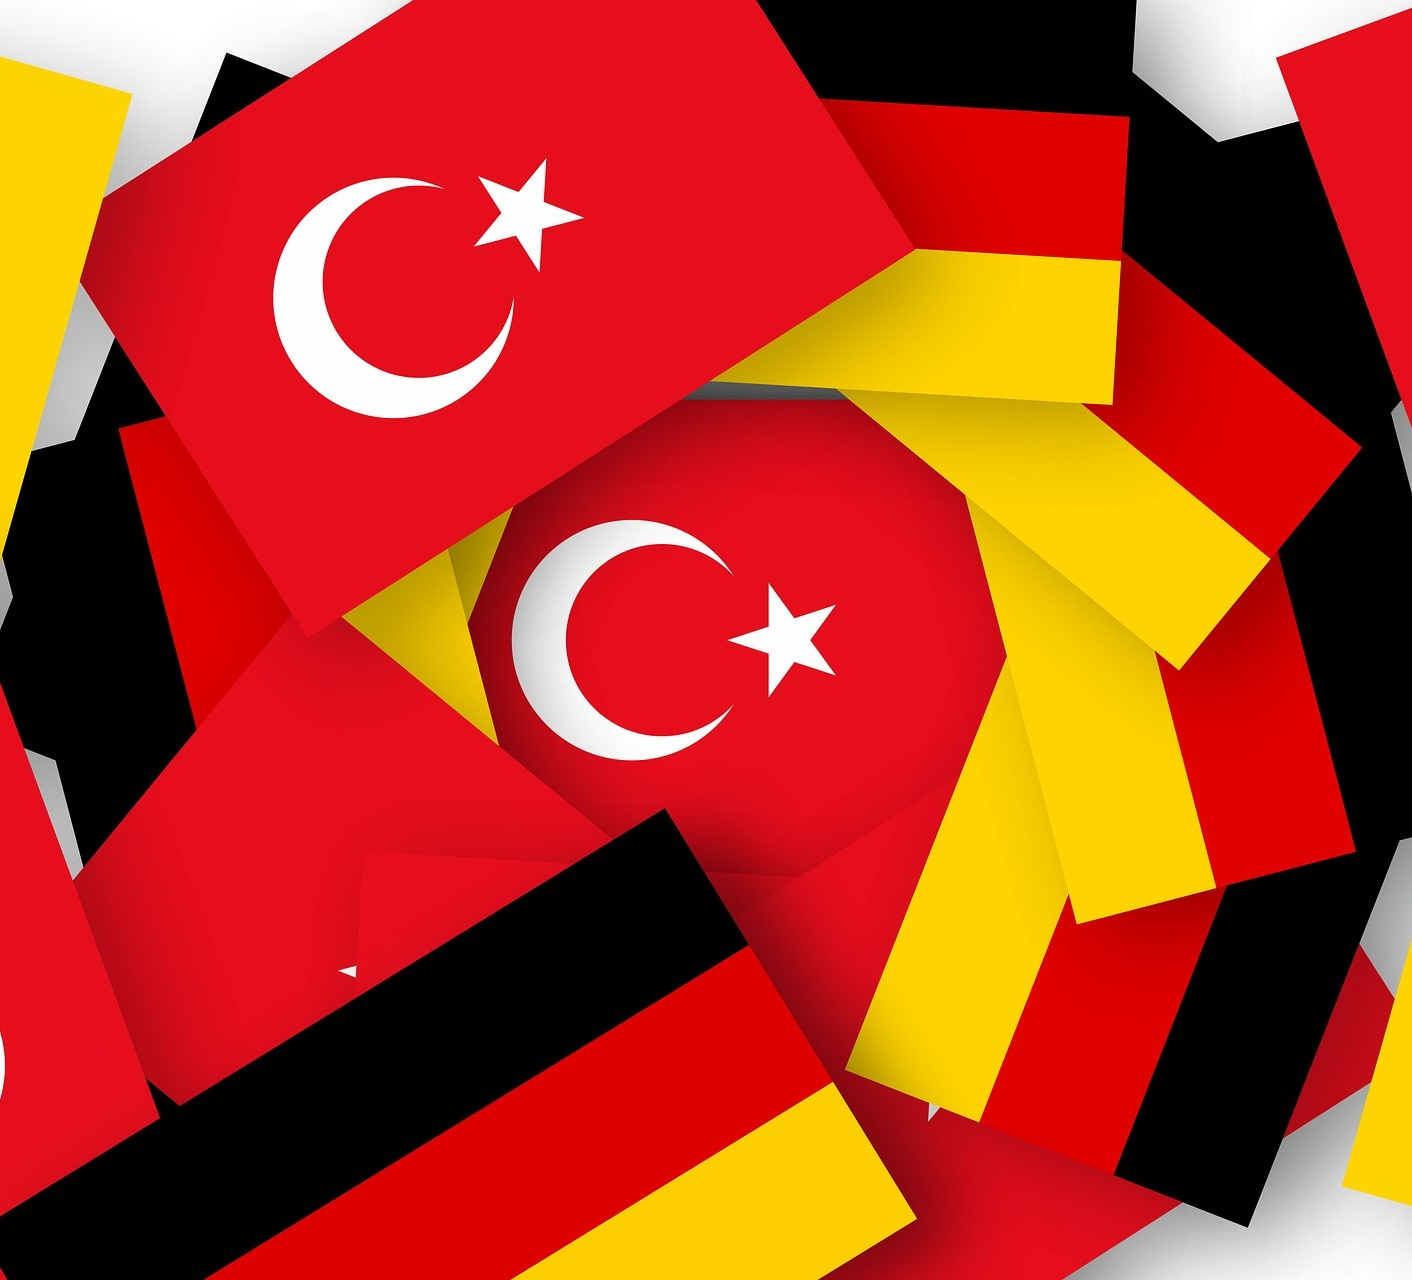 Alexander Clarkson on Turks and Kurds in Germany